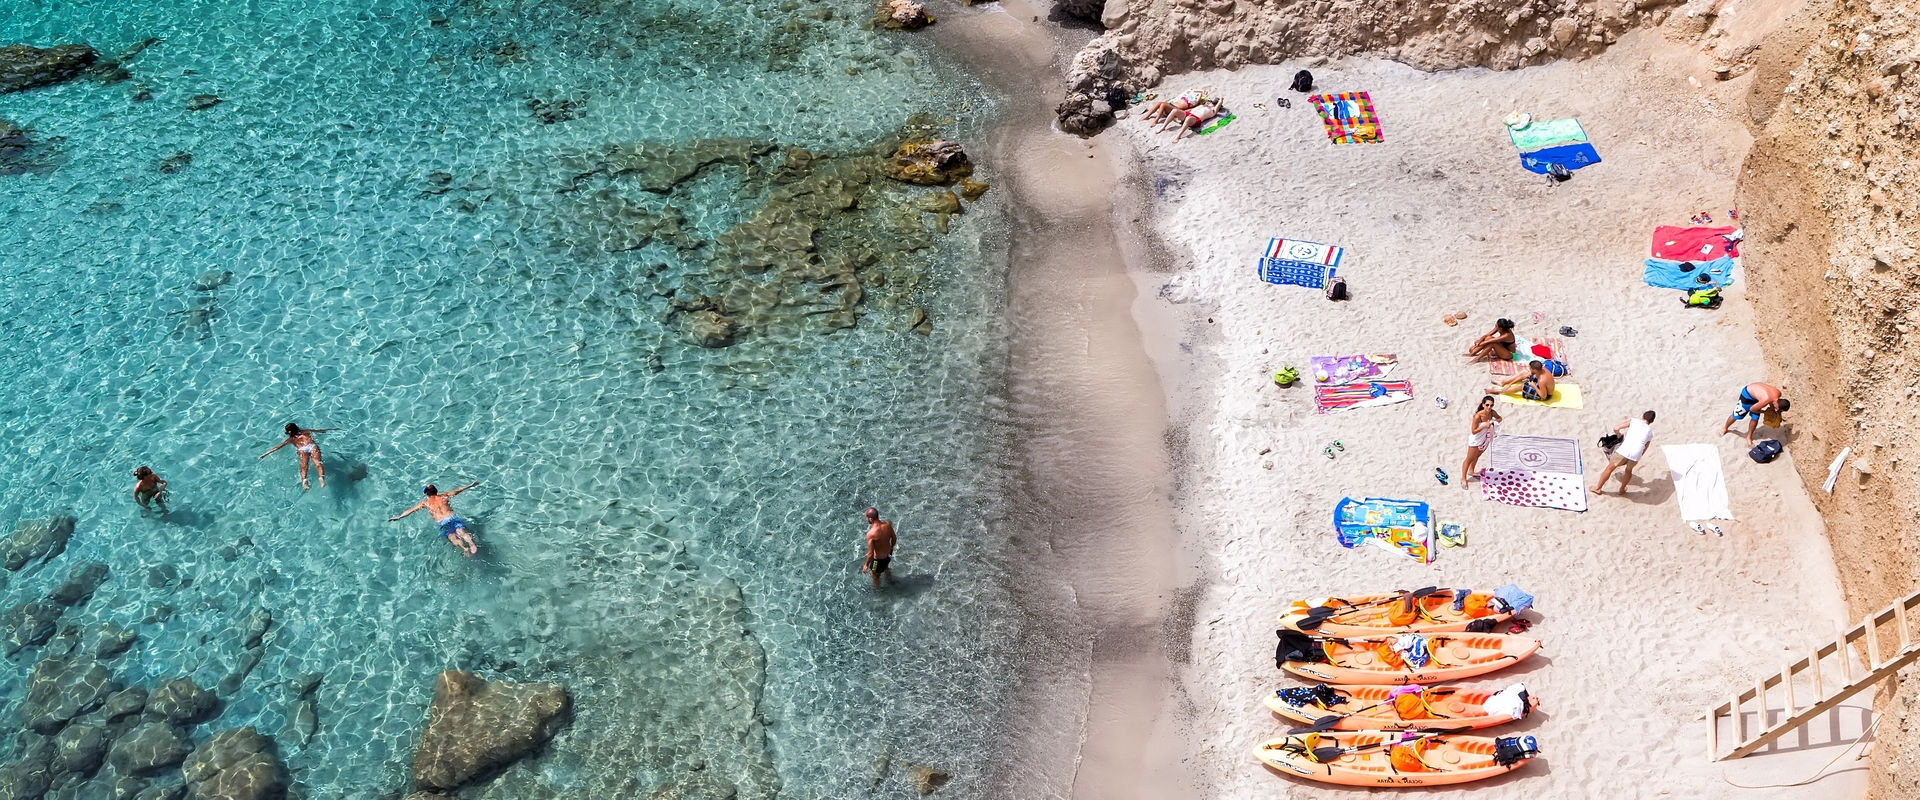 Milos, Greece - September 10, 2015: Top view of canoes at Tsigrado Beach in Milos island, Cyclades,